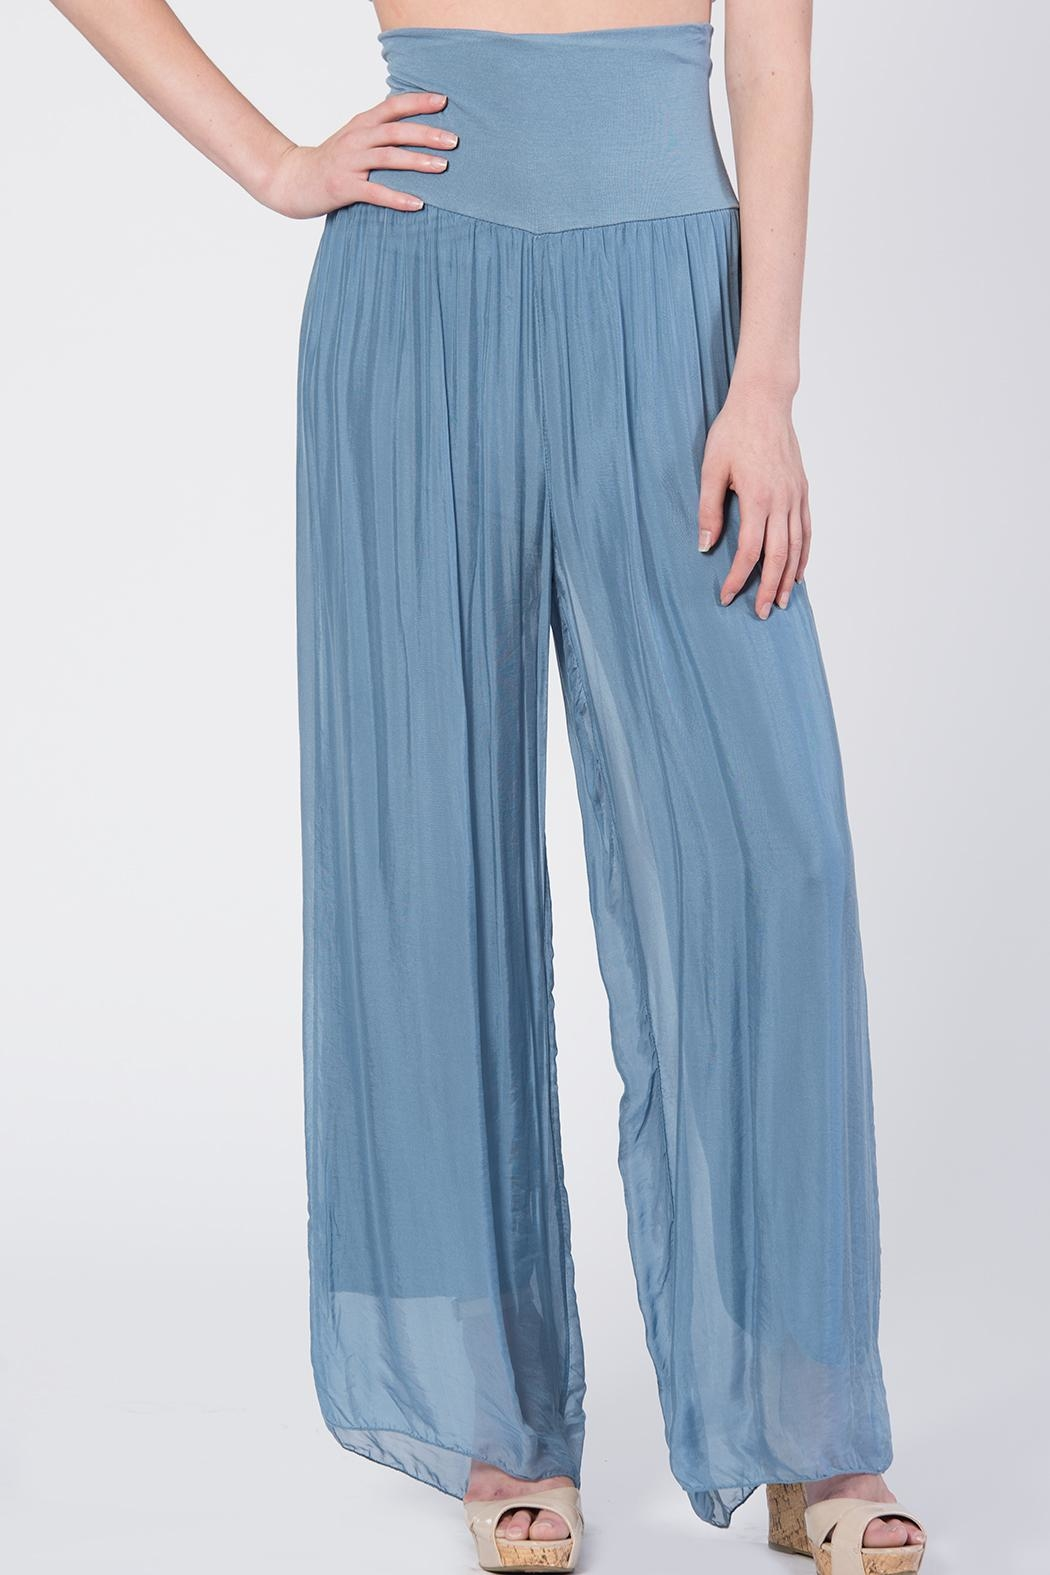 Catwalk Flowy Pleated Pants From Orange County By Blondies